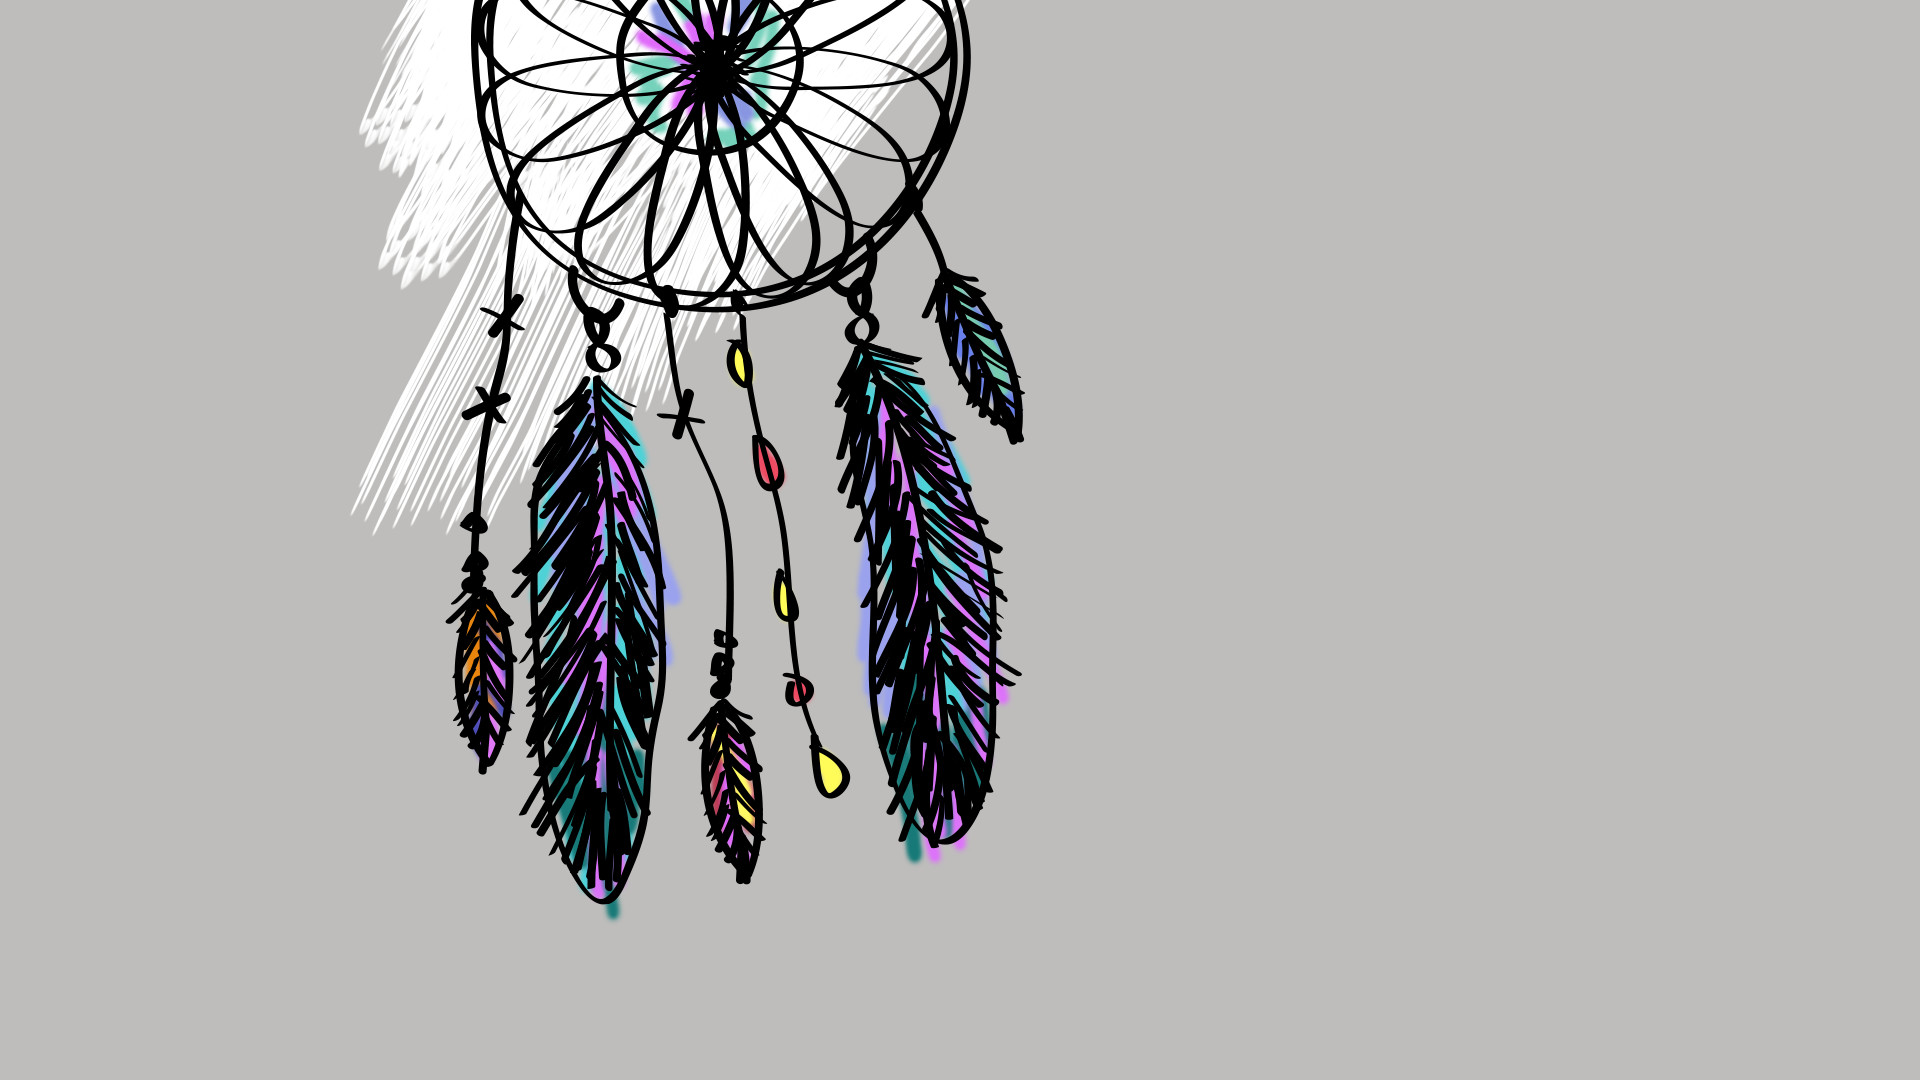 Dreamcatcher wallpaper 64 images 1920x1080 dreamcatcher wallpaper hd 19201080 voltagebd